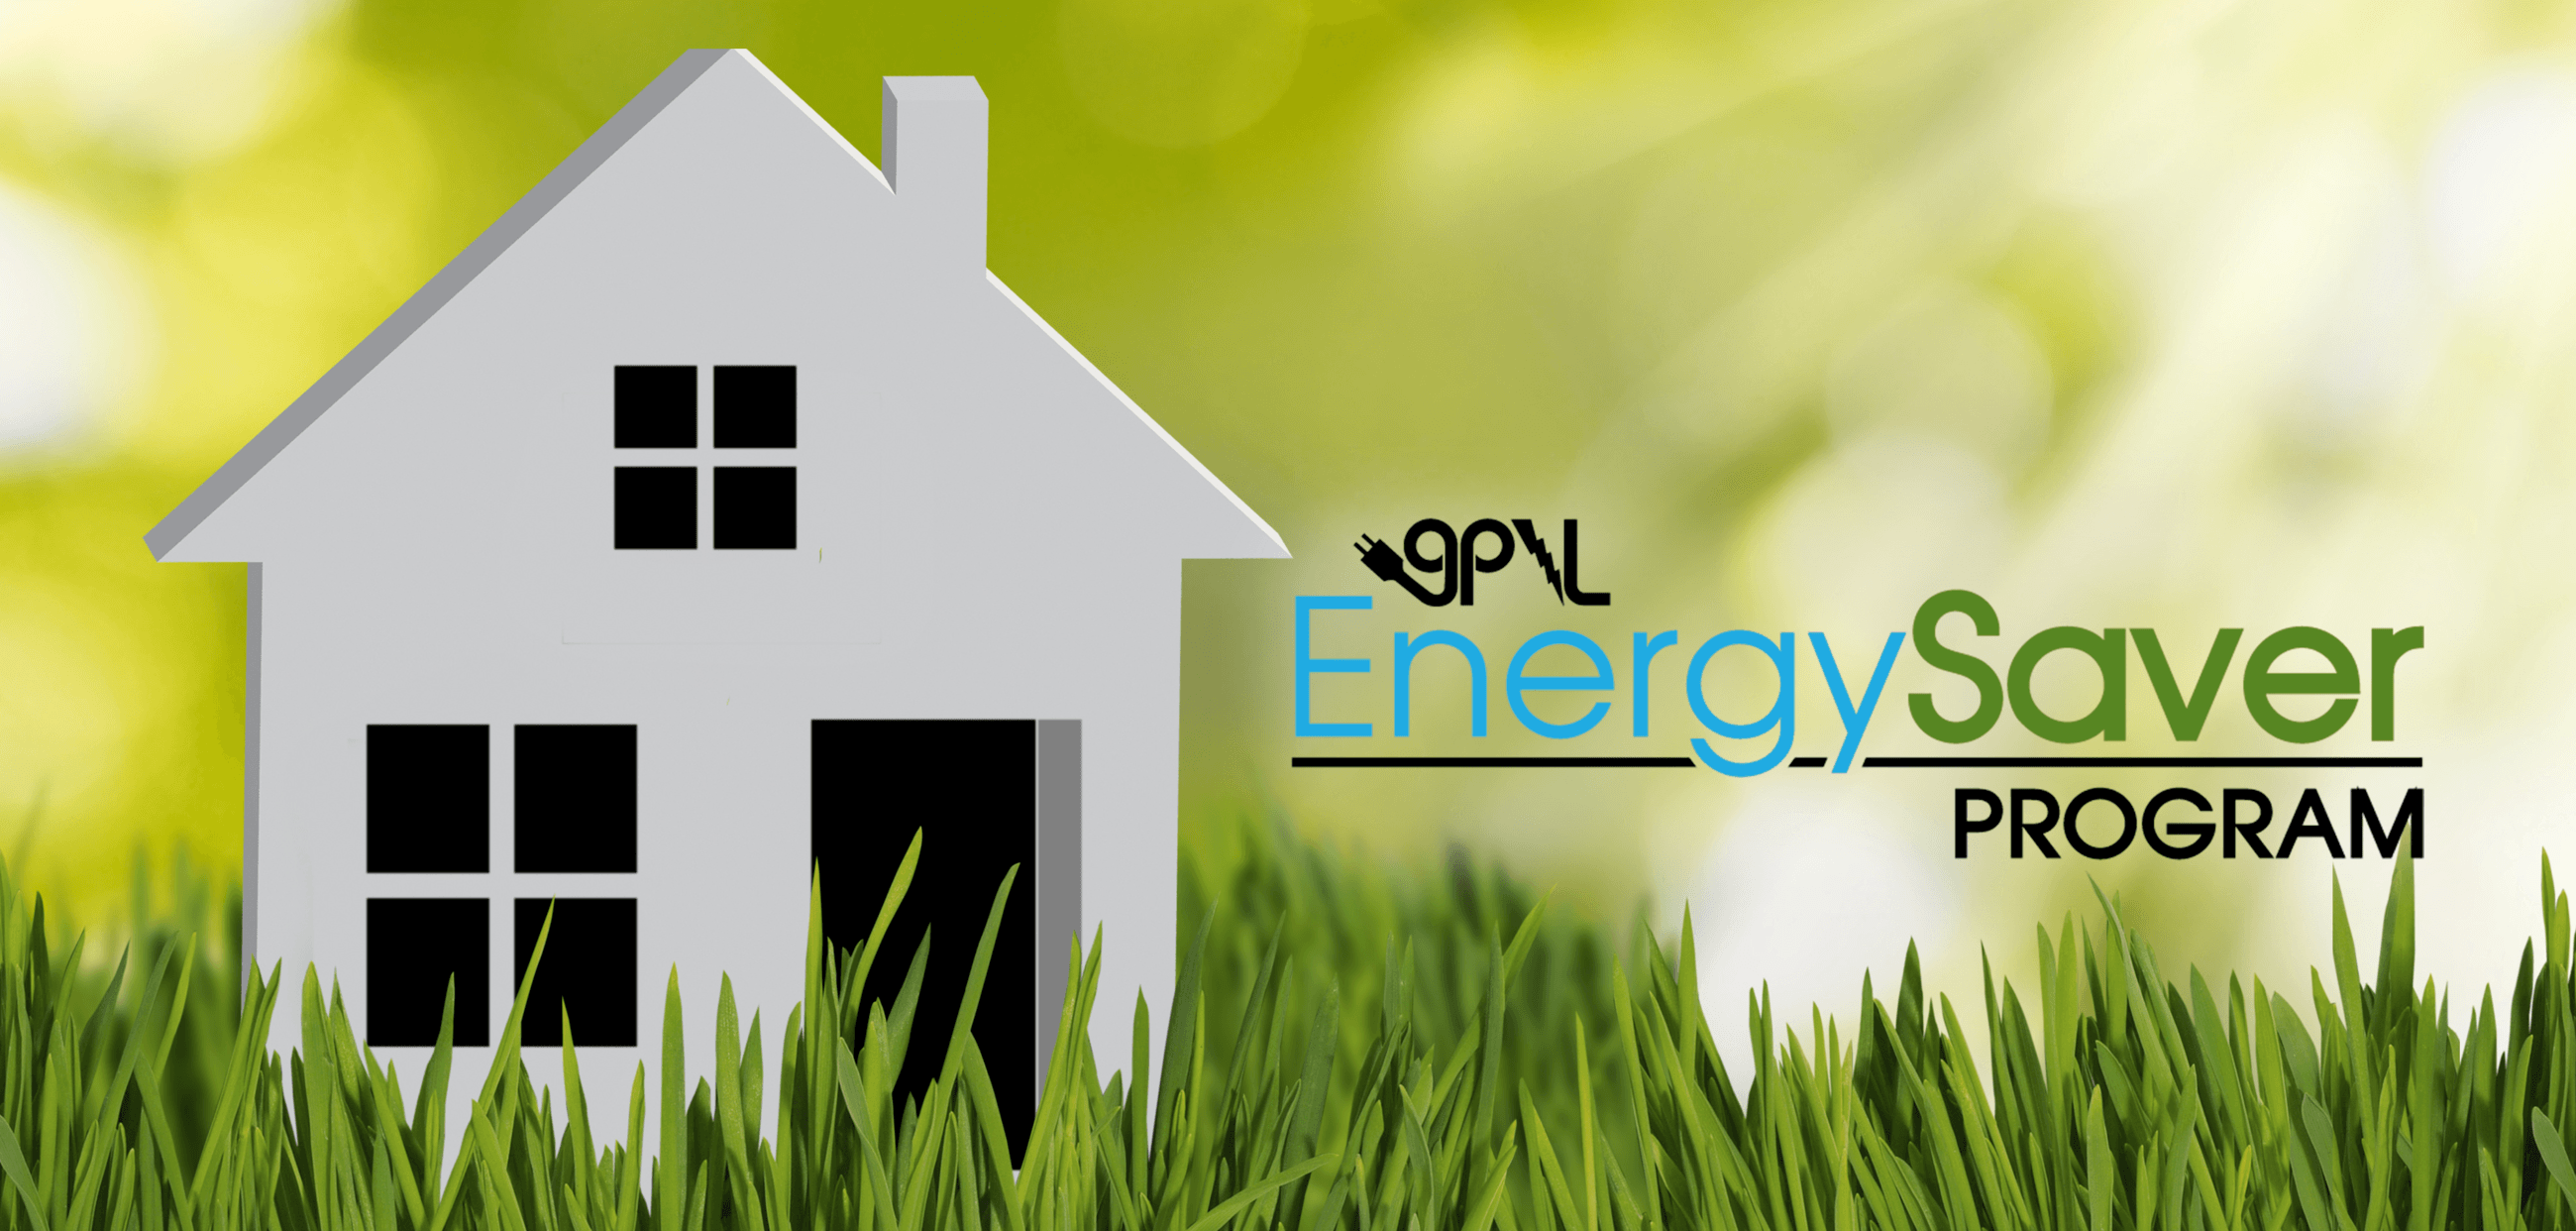 Energy Saver Logo with house